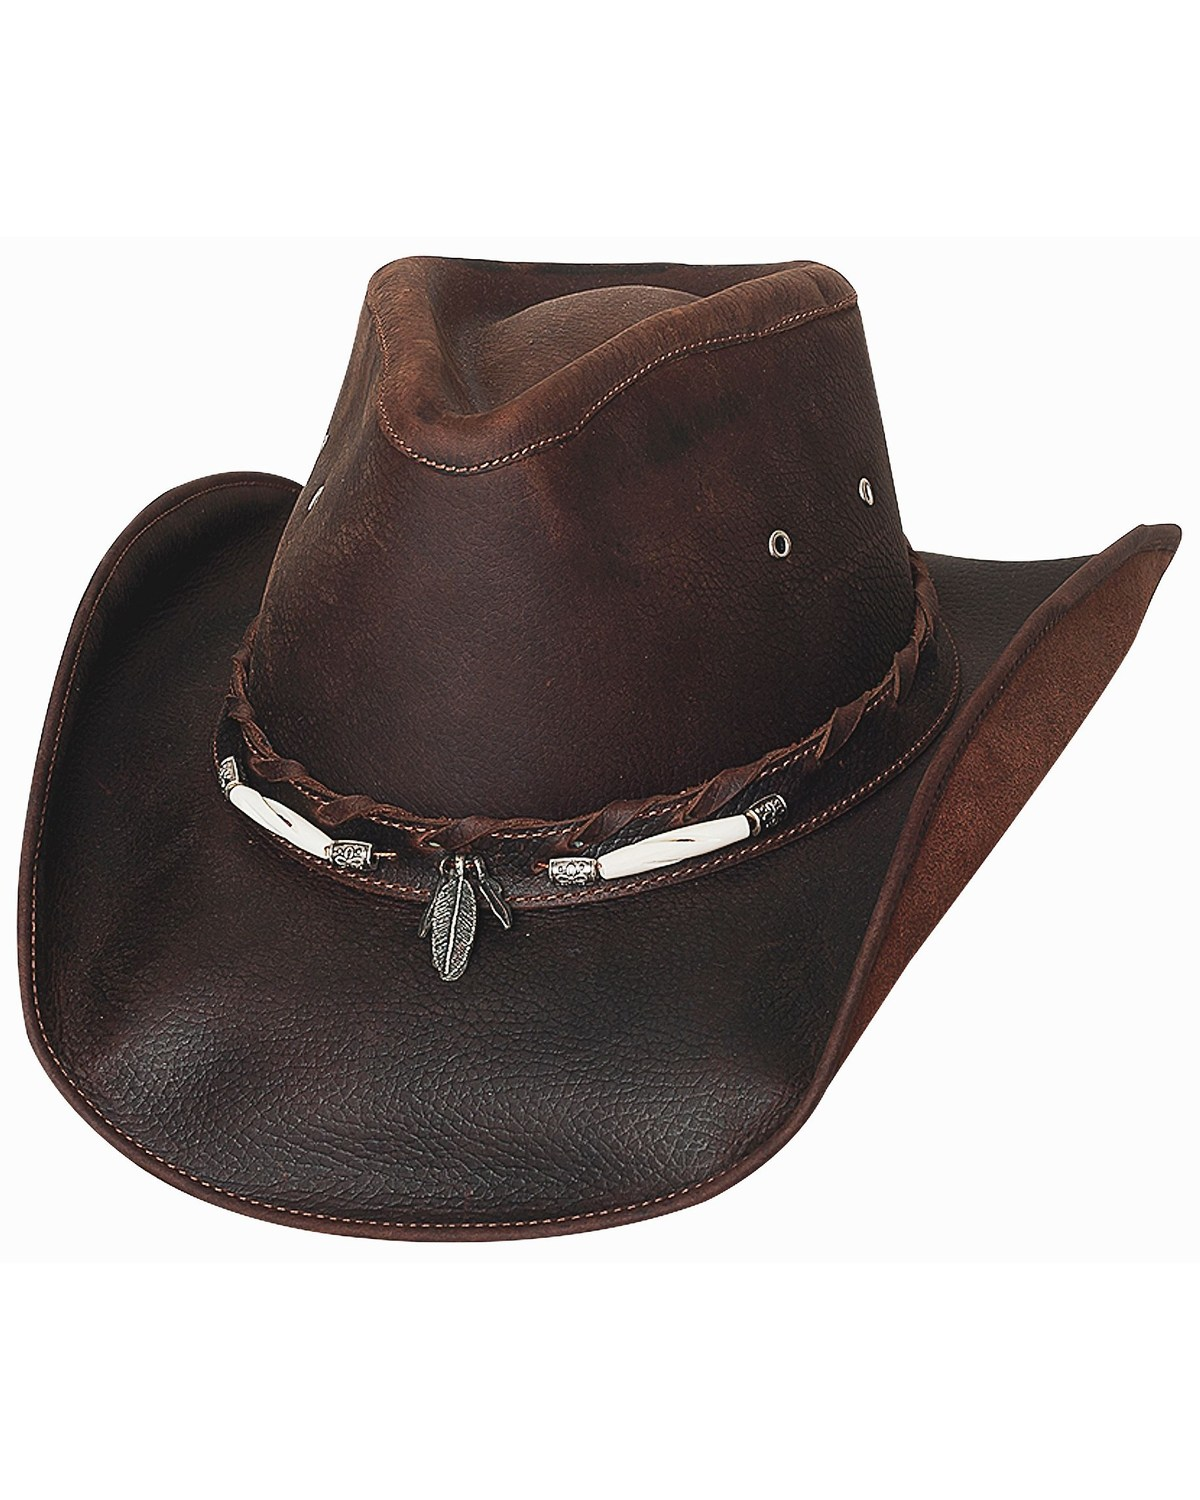 11ccce8ce67 Bullhide Briscoe Leather Cowboy Hat